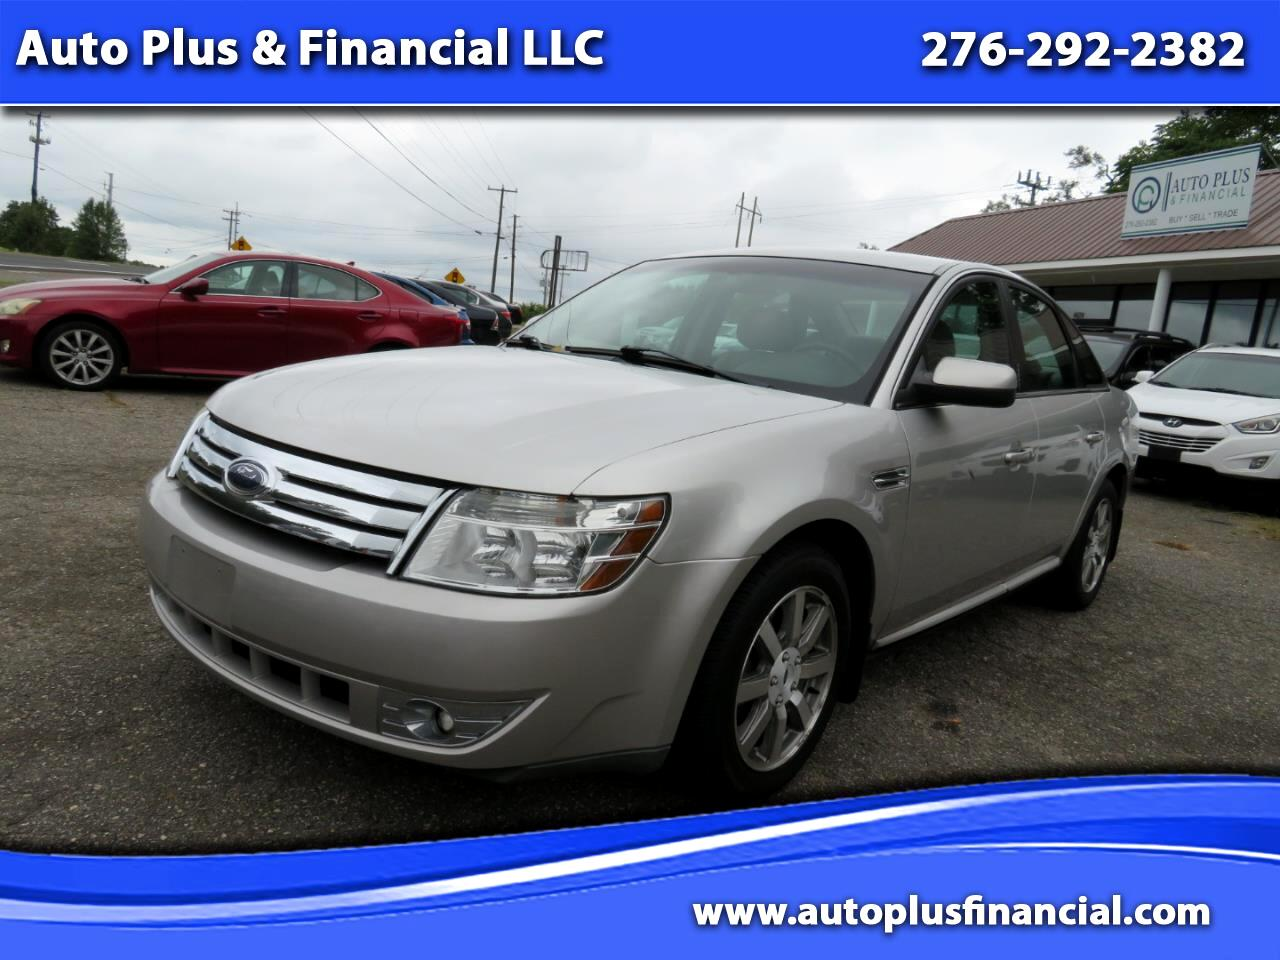 Ford Taurus 4dr Sdn SEL FWD 2008